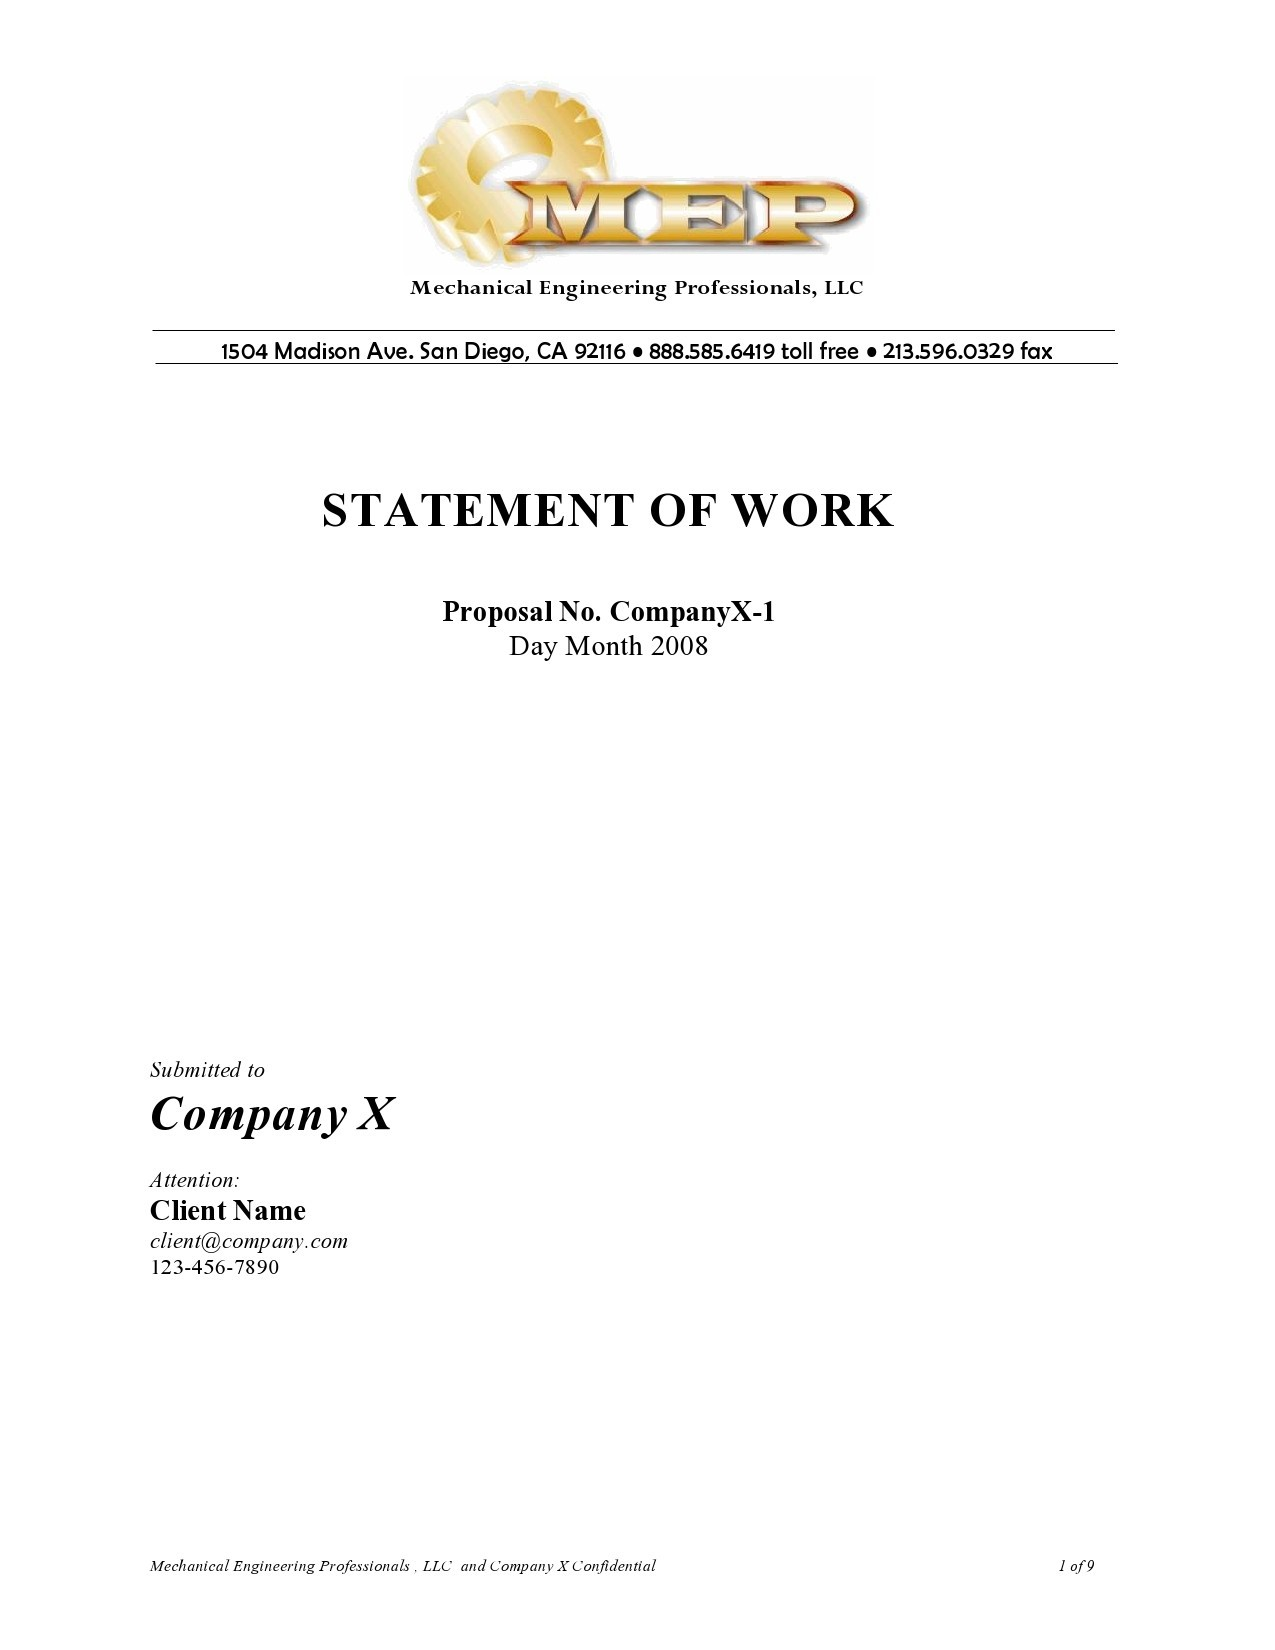 Free statement of work template 23